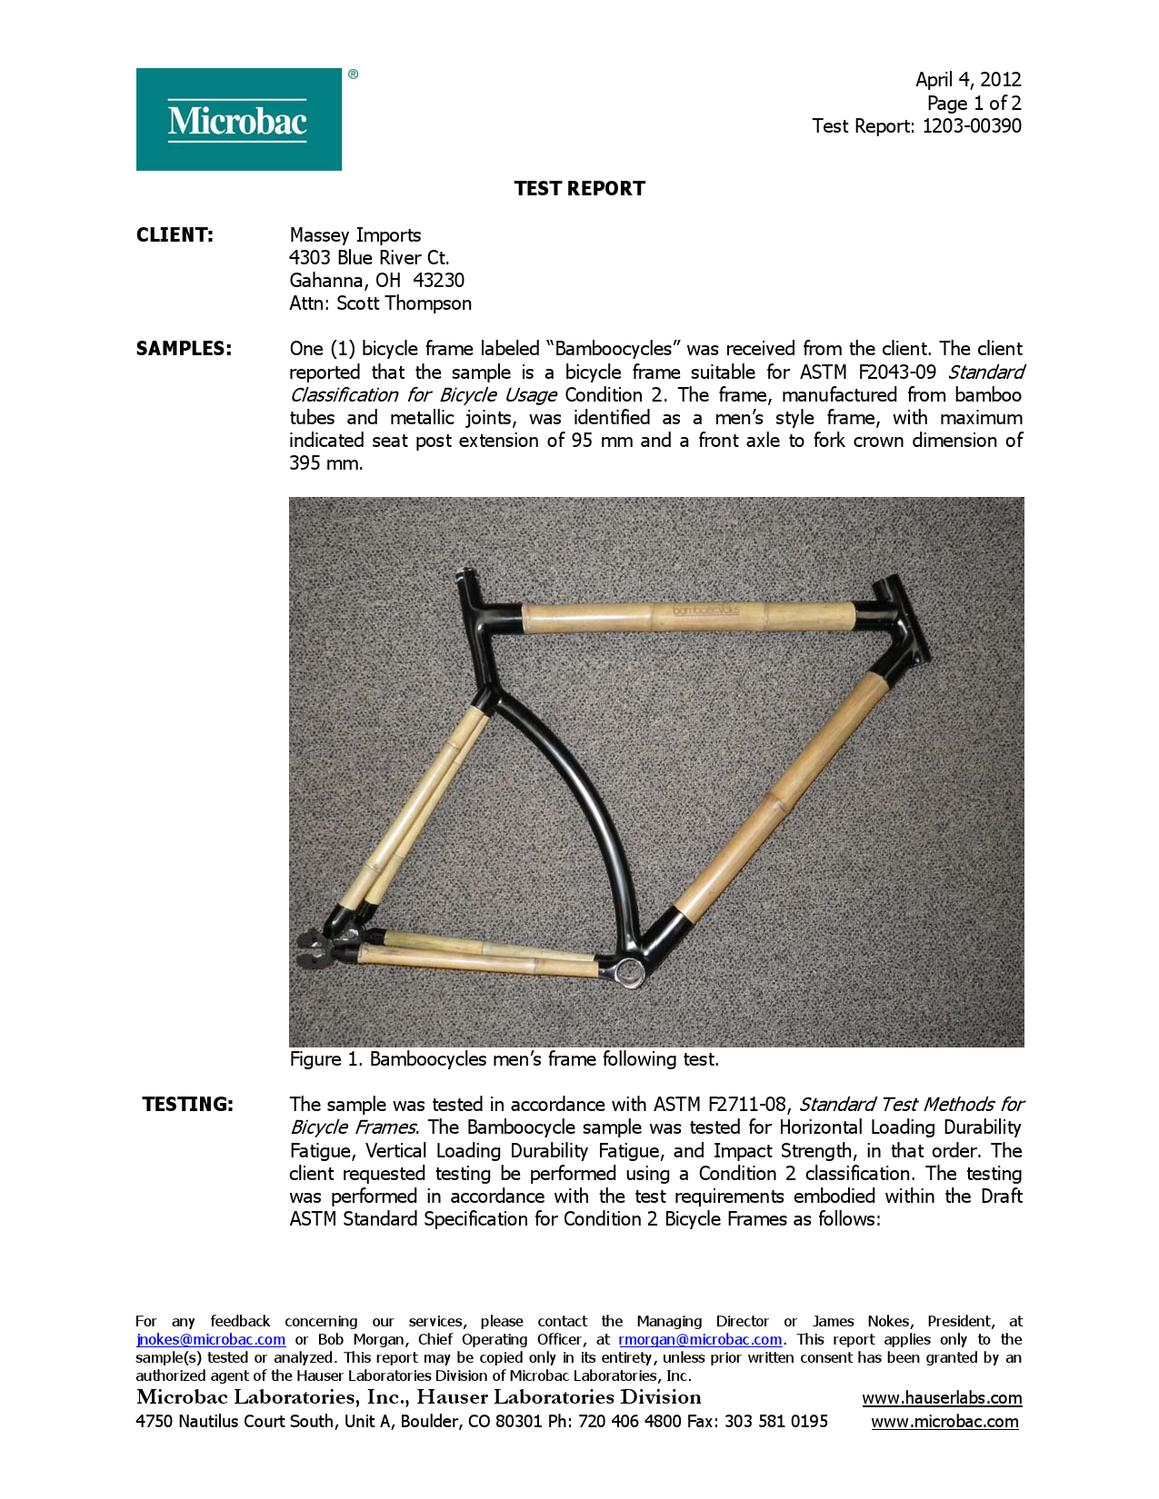 Standard Test Methods for Bicycle Frames by Microbac by Bamboocycles